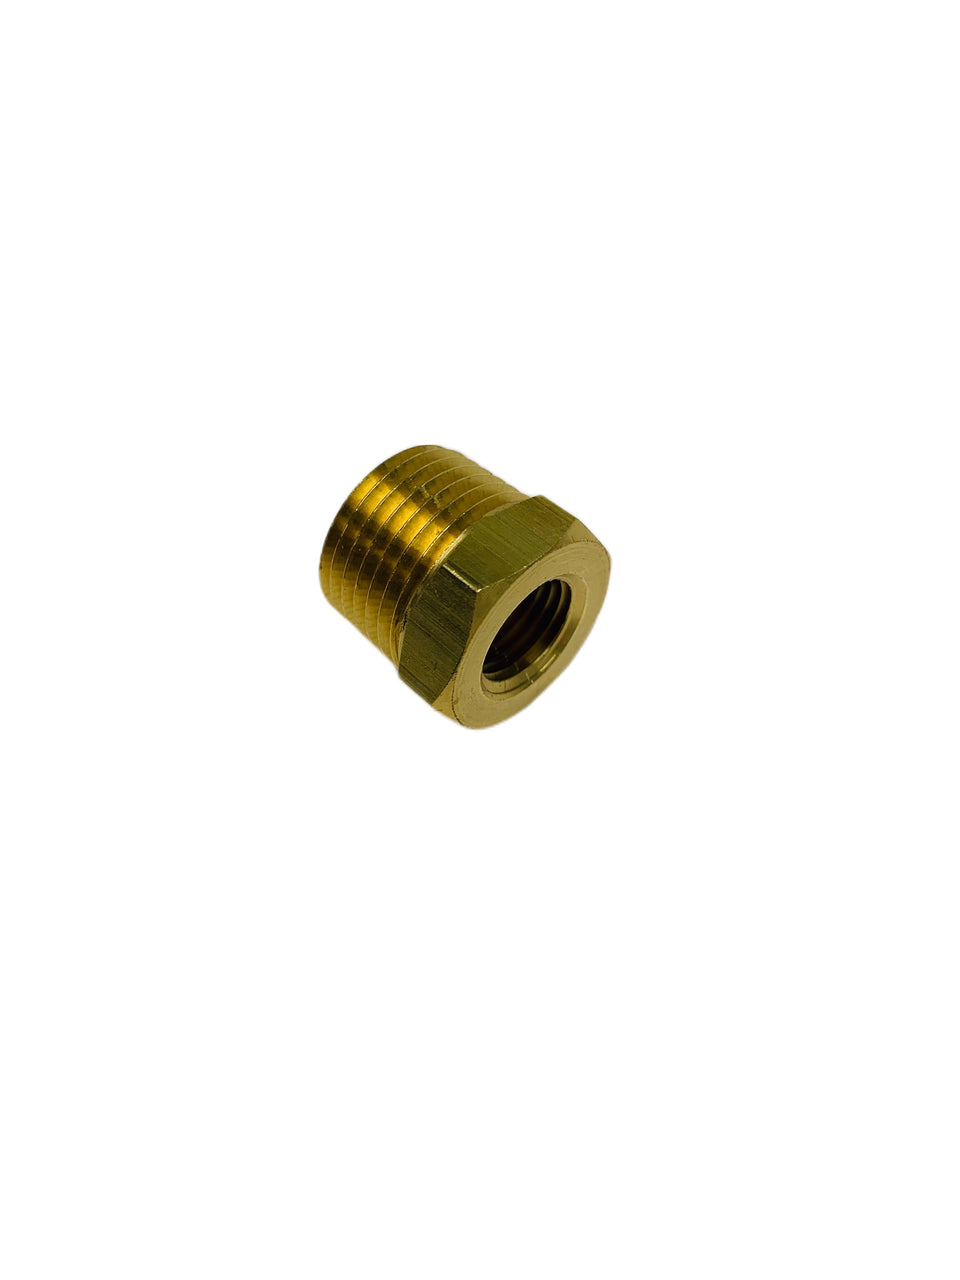 "Brass P-100-84 Female to Male Hex Bushing Pipe 1/4"" x 1/2"" Adapter Fitting"